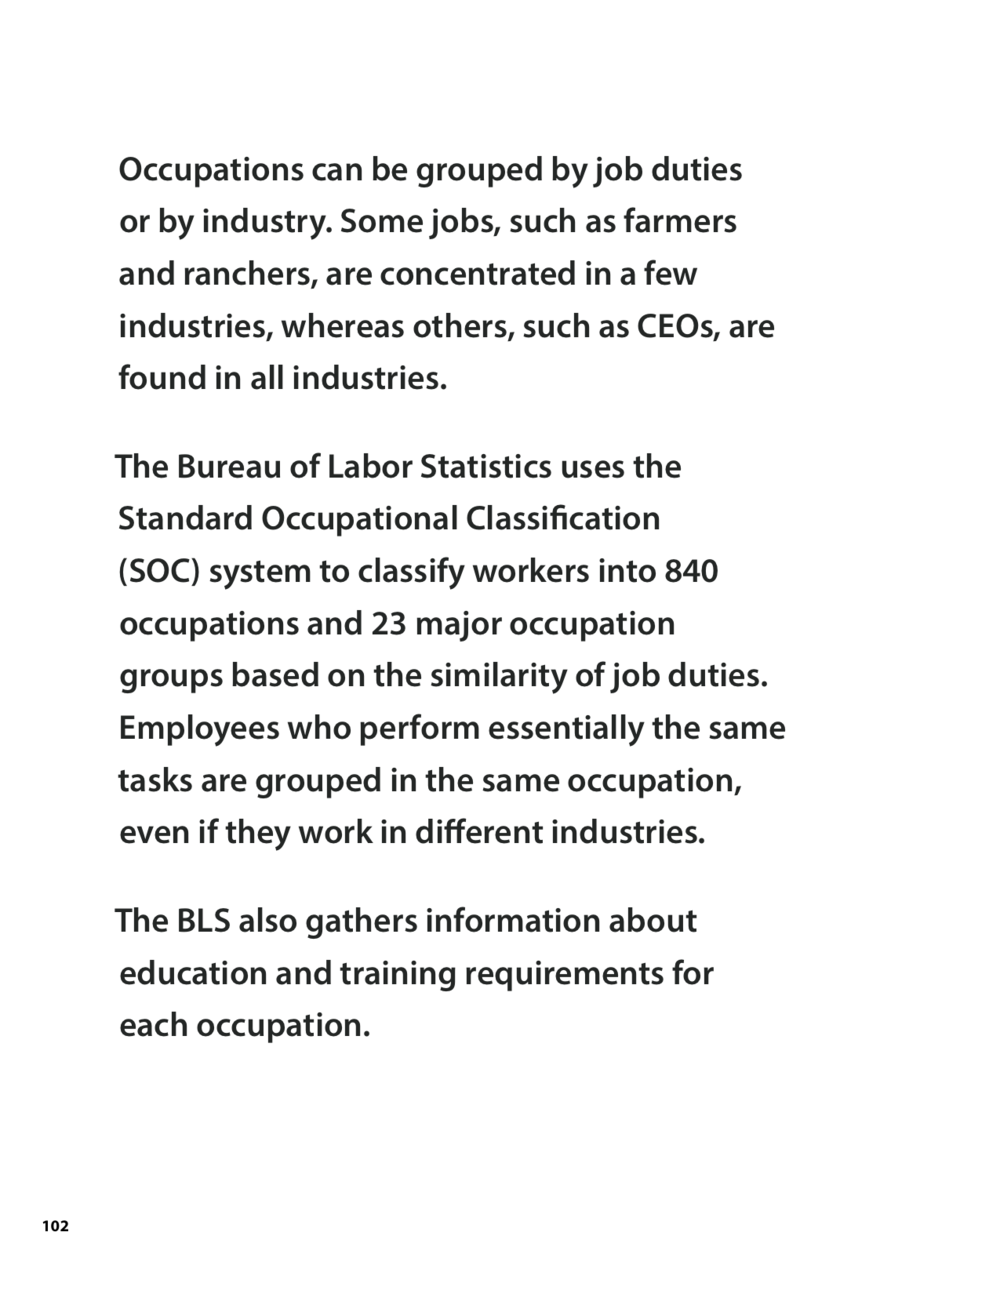 IncomeGuide_2013_Jan17_RGB_page 102_102.png